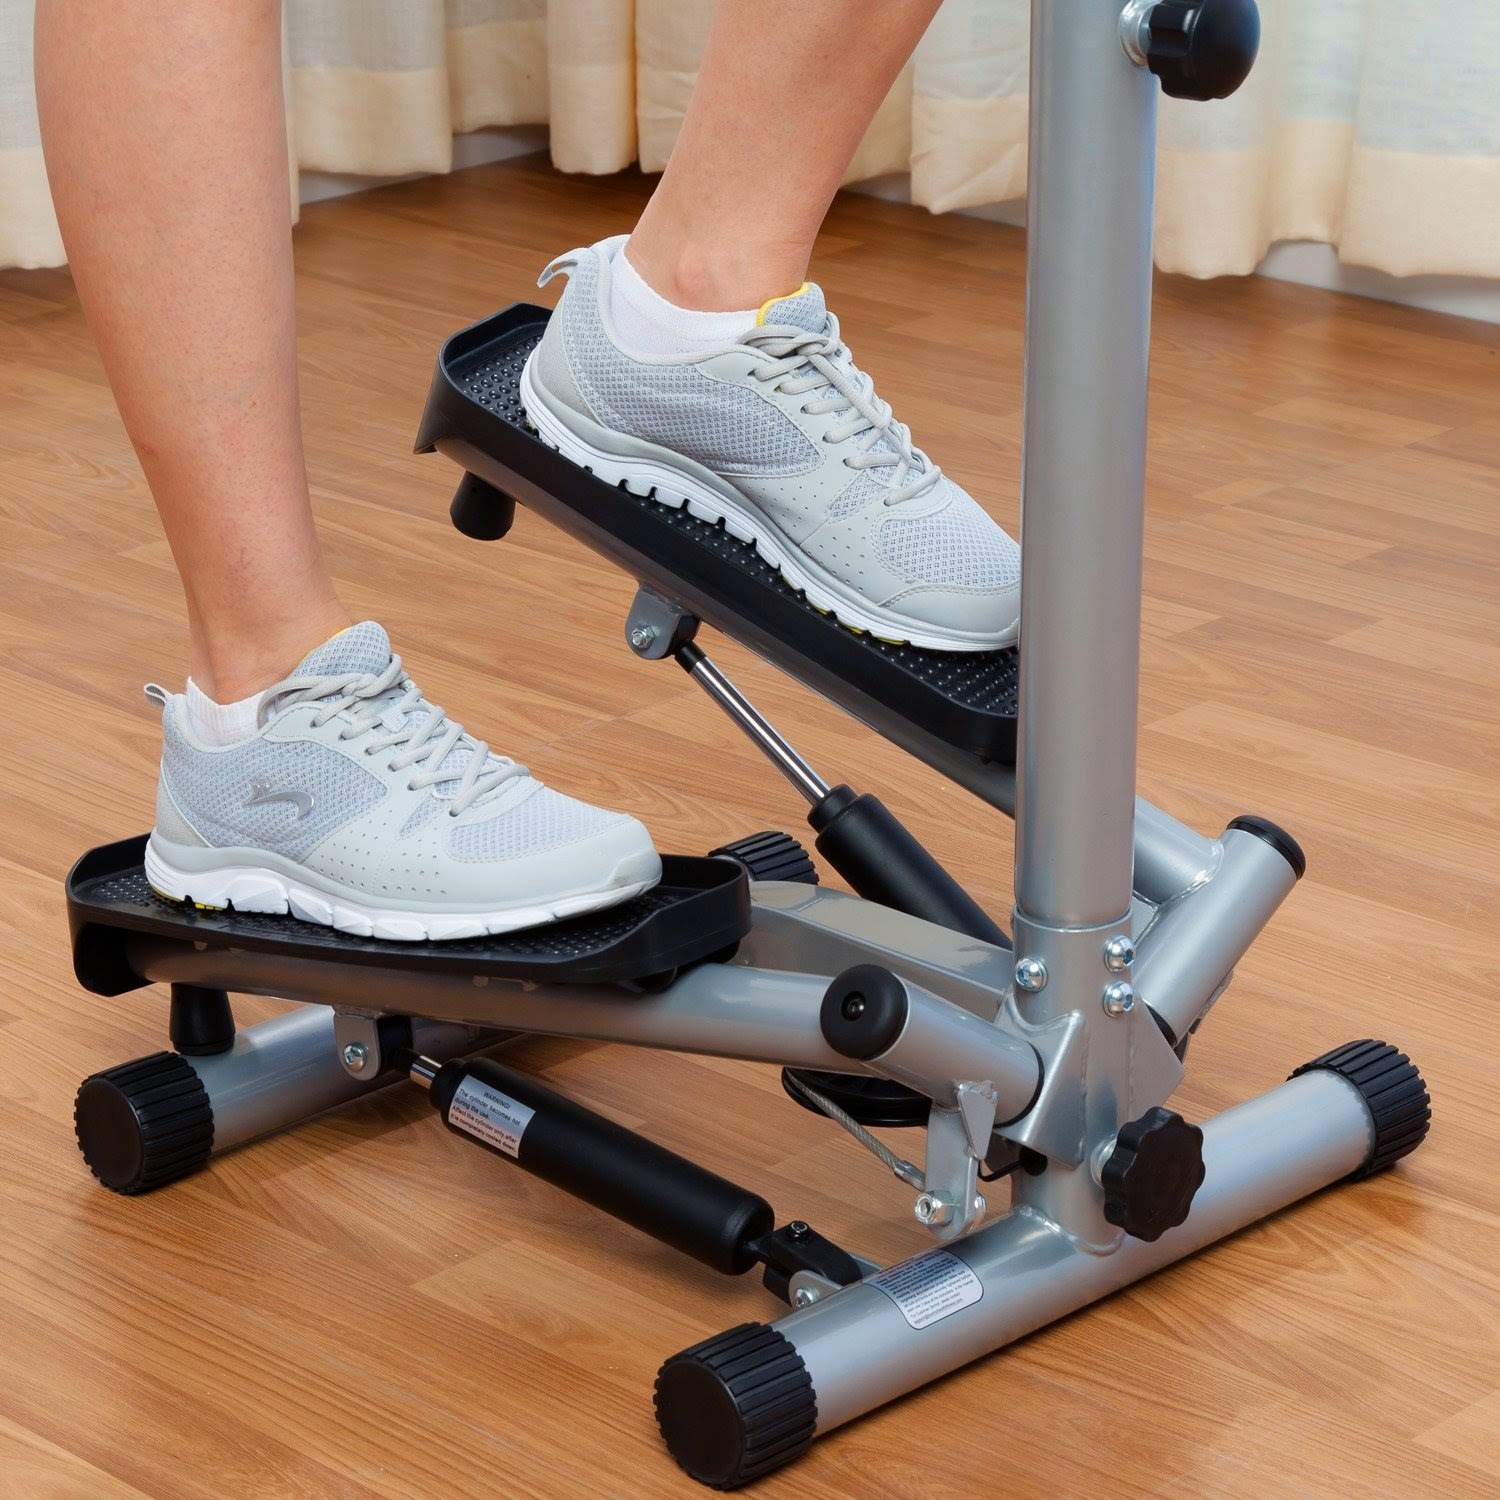 Sunny Twister Stepper in action, tone your buttocks, thighs and legs, low impact exercise for minimum pressure on bones and joints